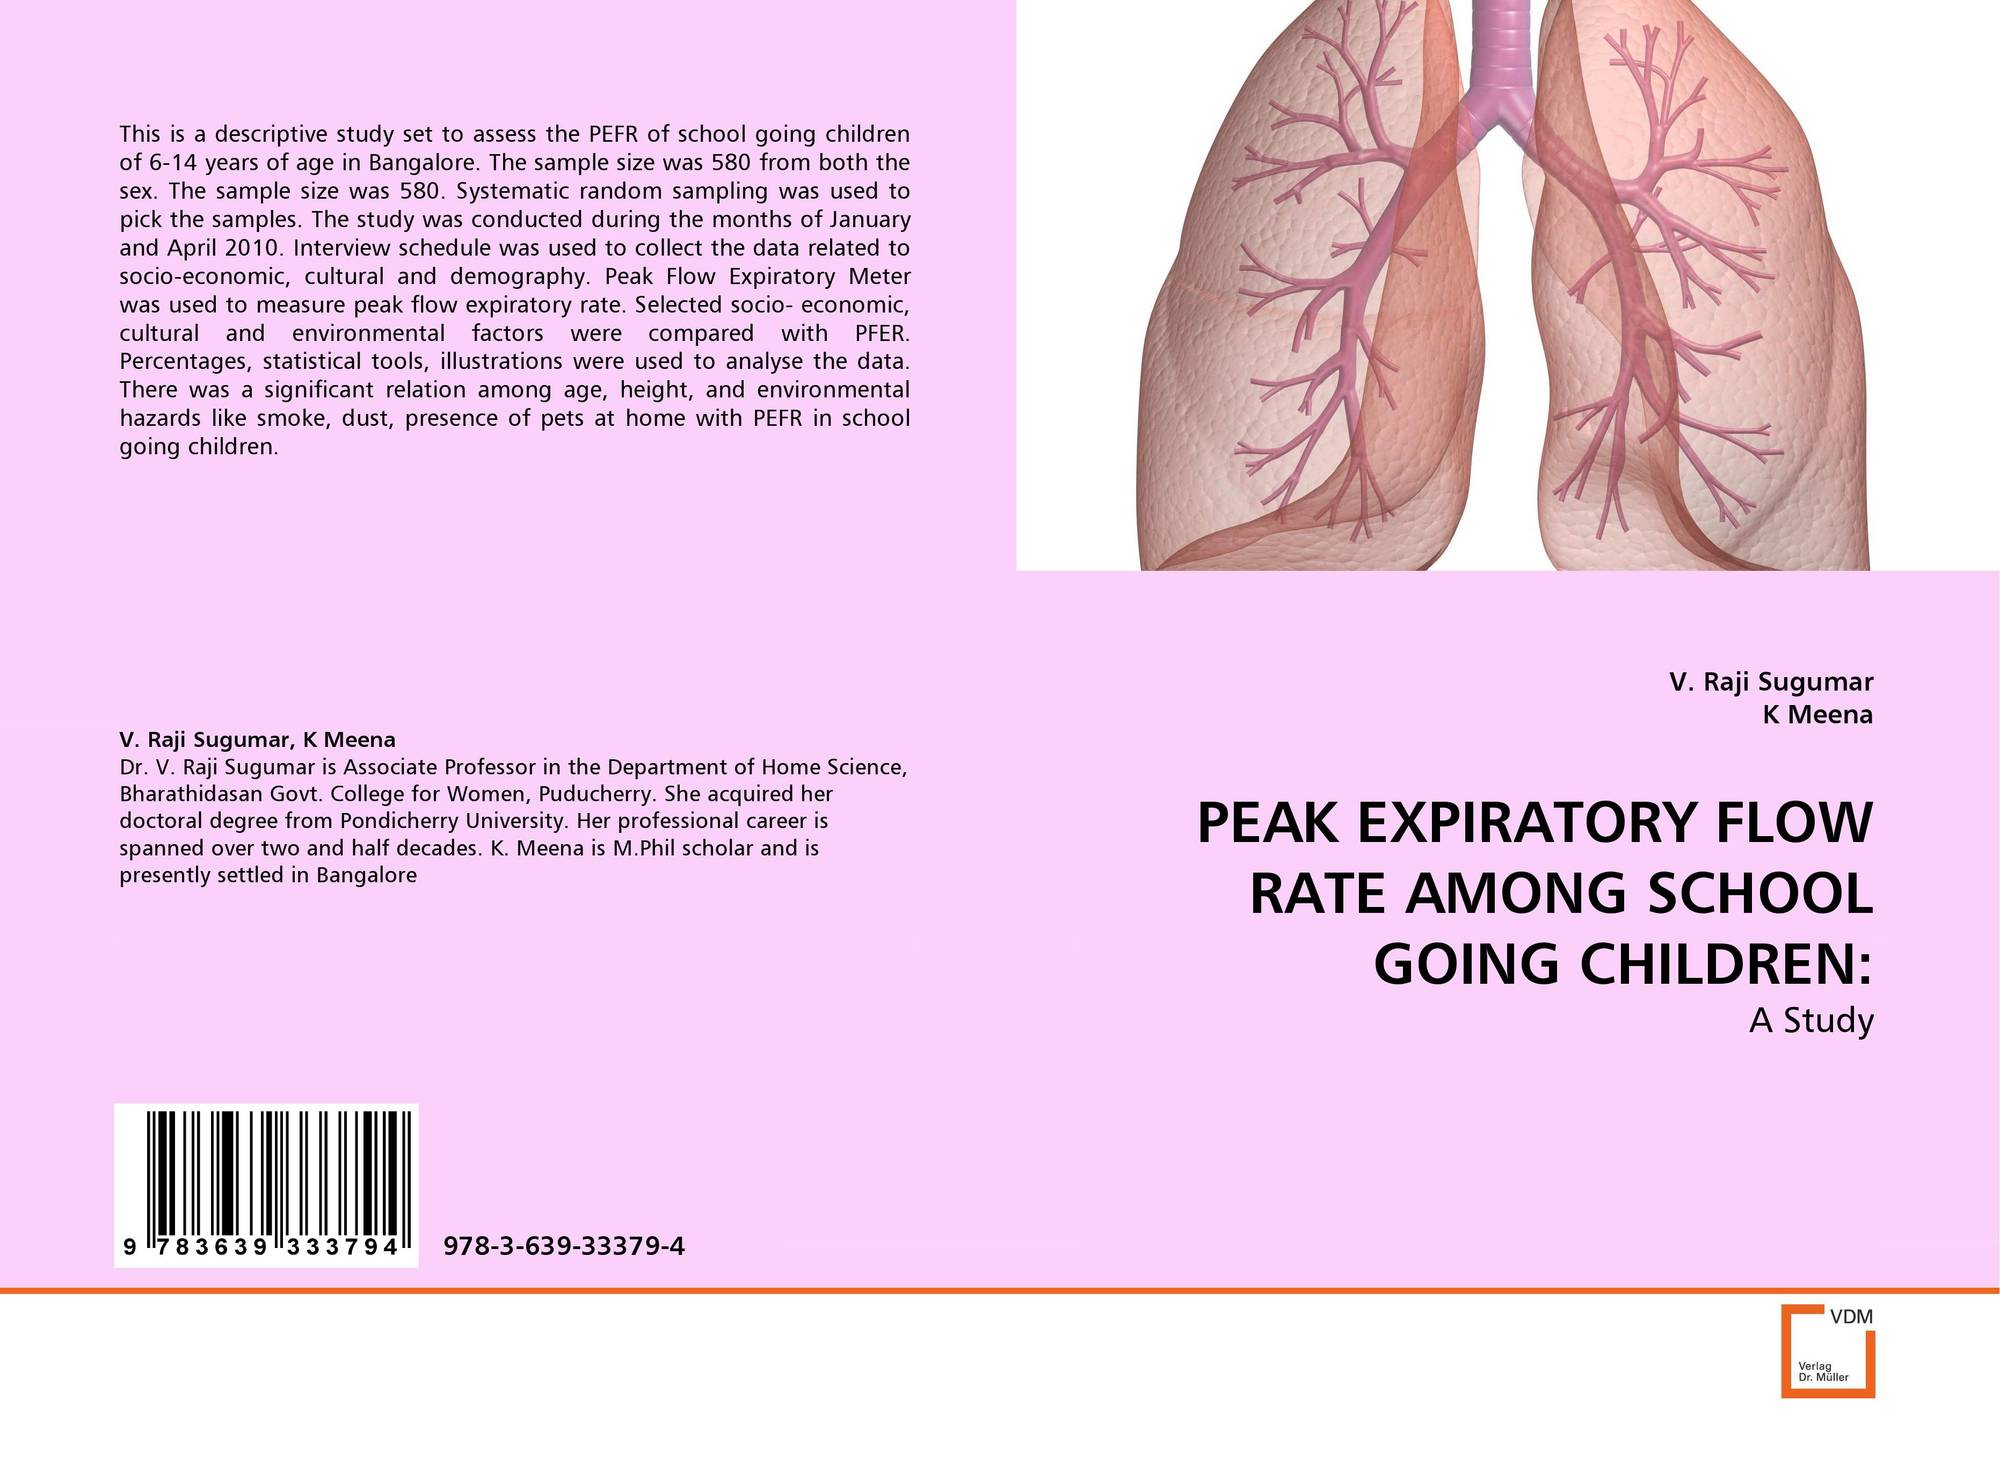 Peak Expiratory Flow Rate Among School Going Children 978 3 639